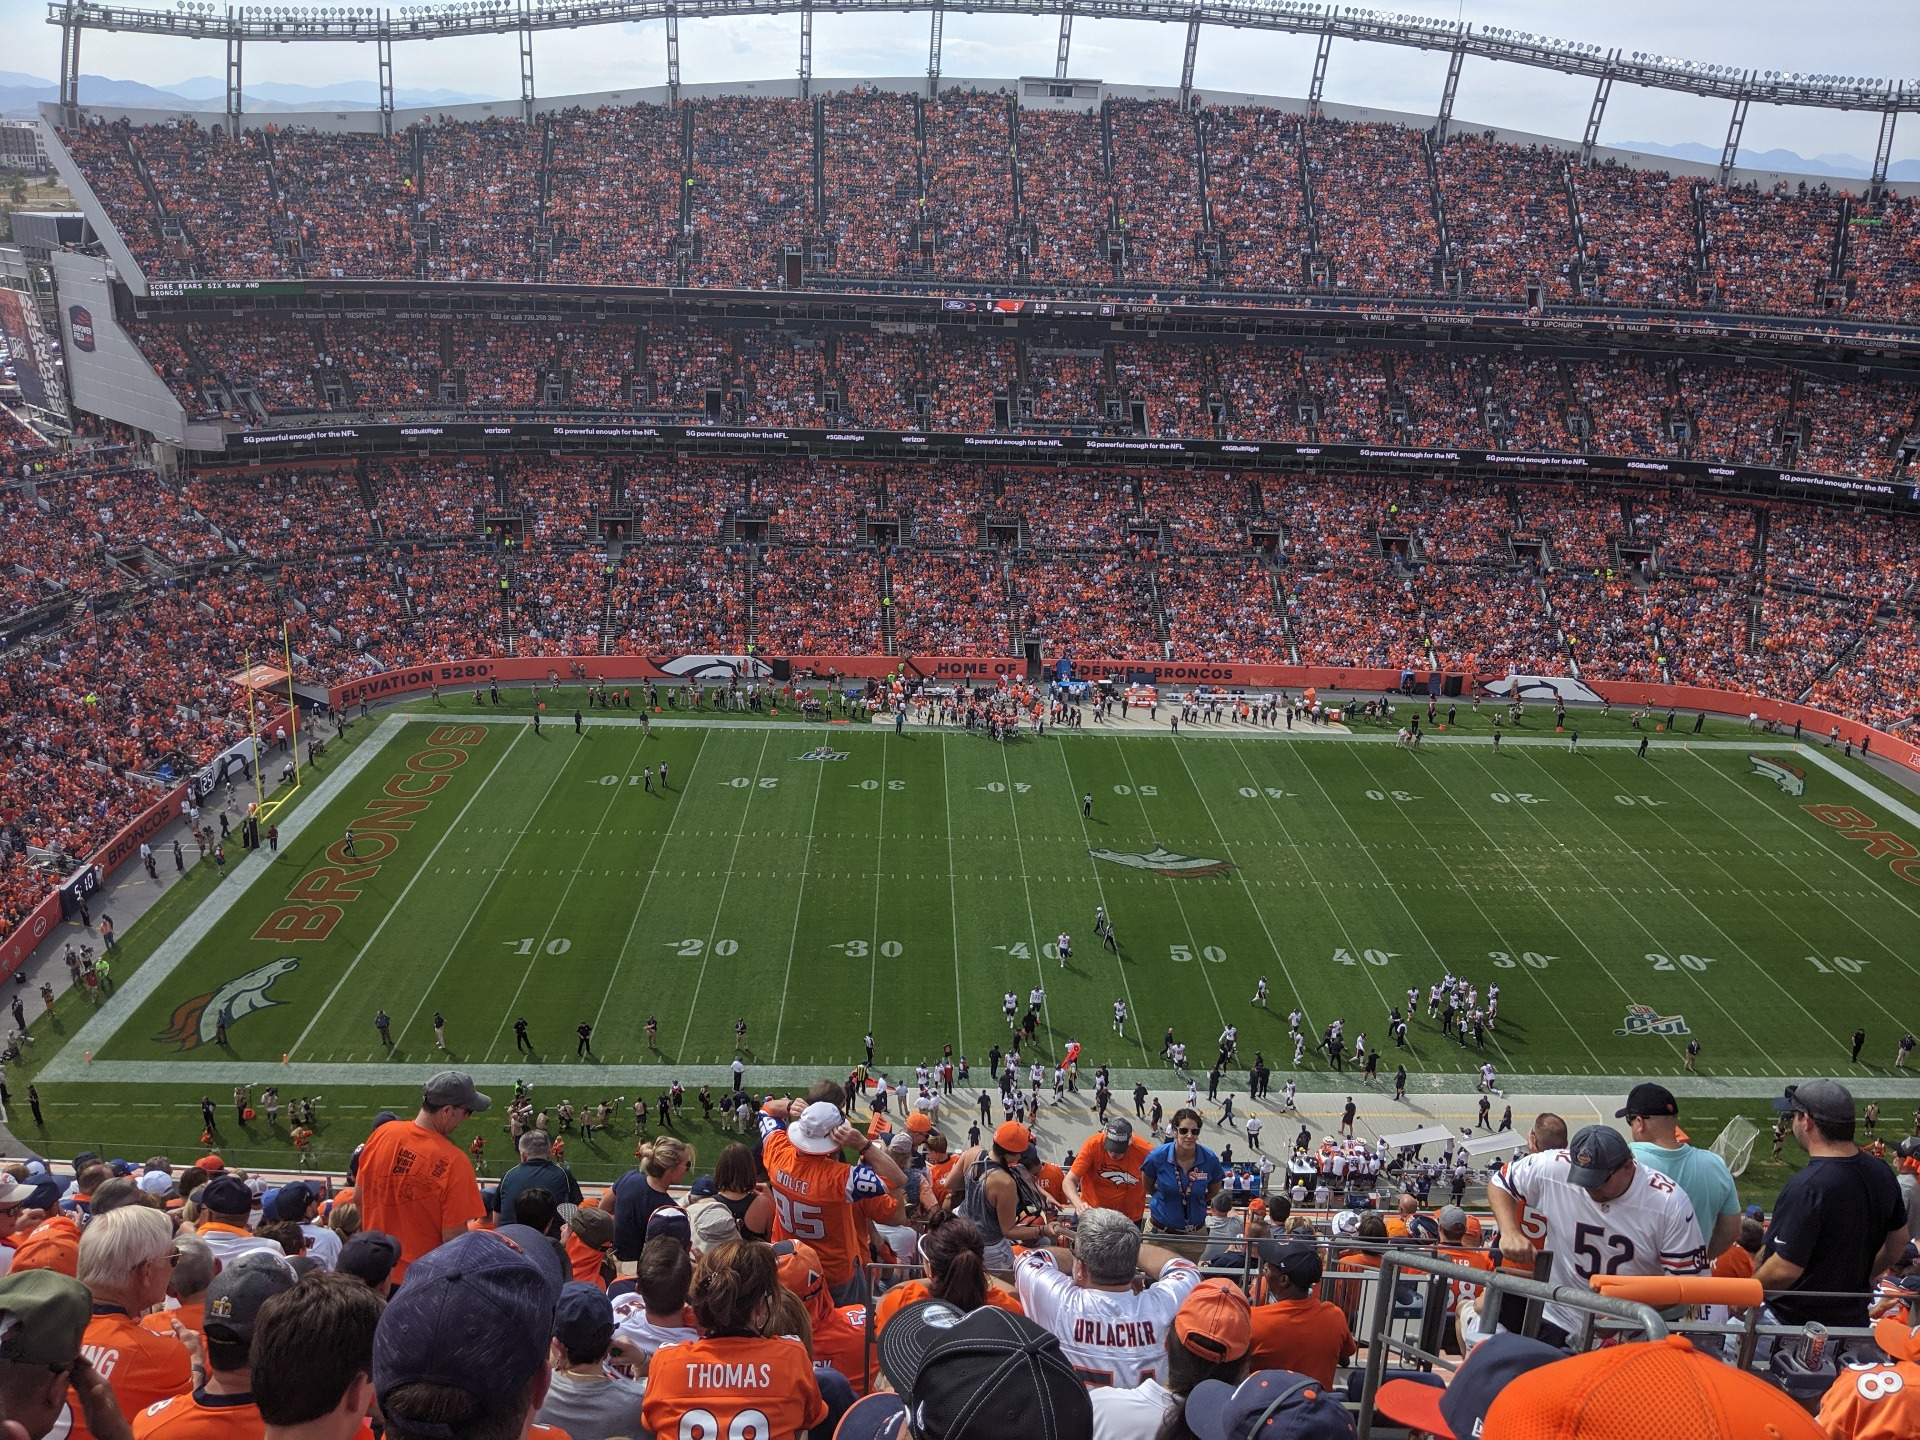 Empower Field at Mile High Stadium Section 536 Row 18 Seat 4